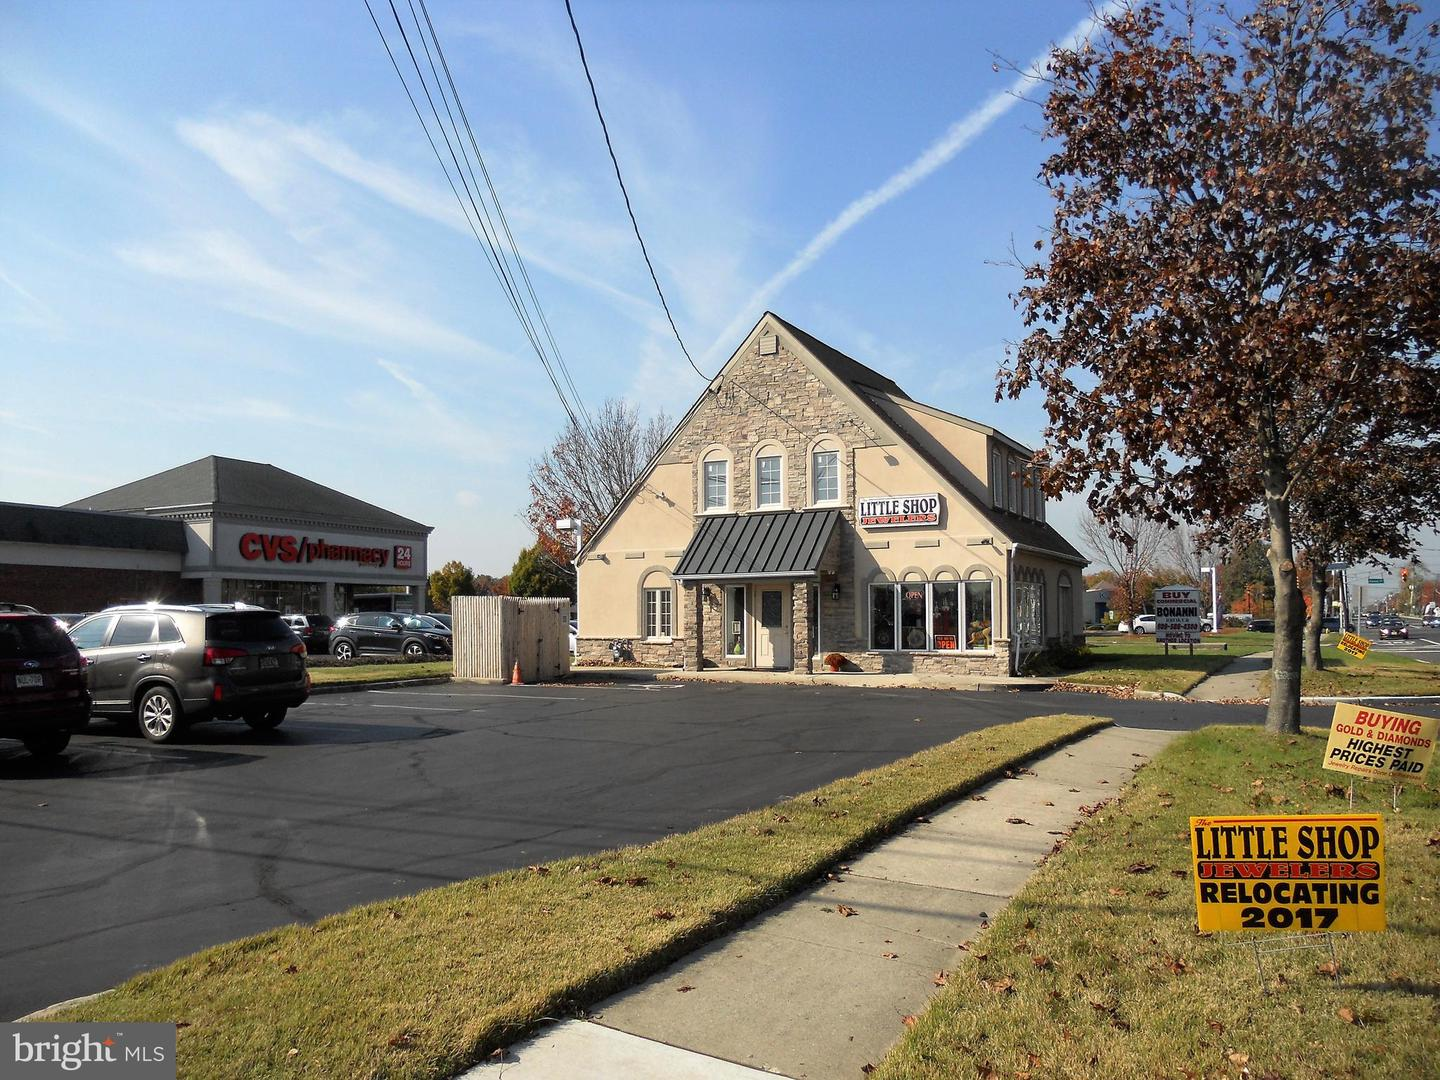 Property for Sale at 1111 ROUTE 33 Trenton, New Jersey 08690 United States